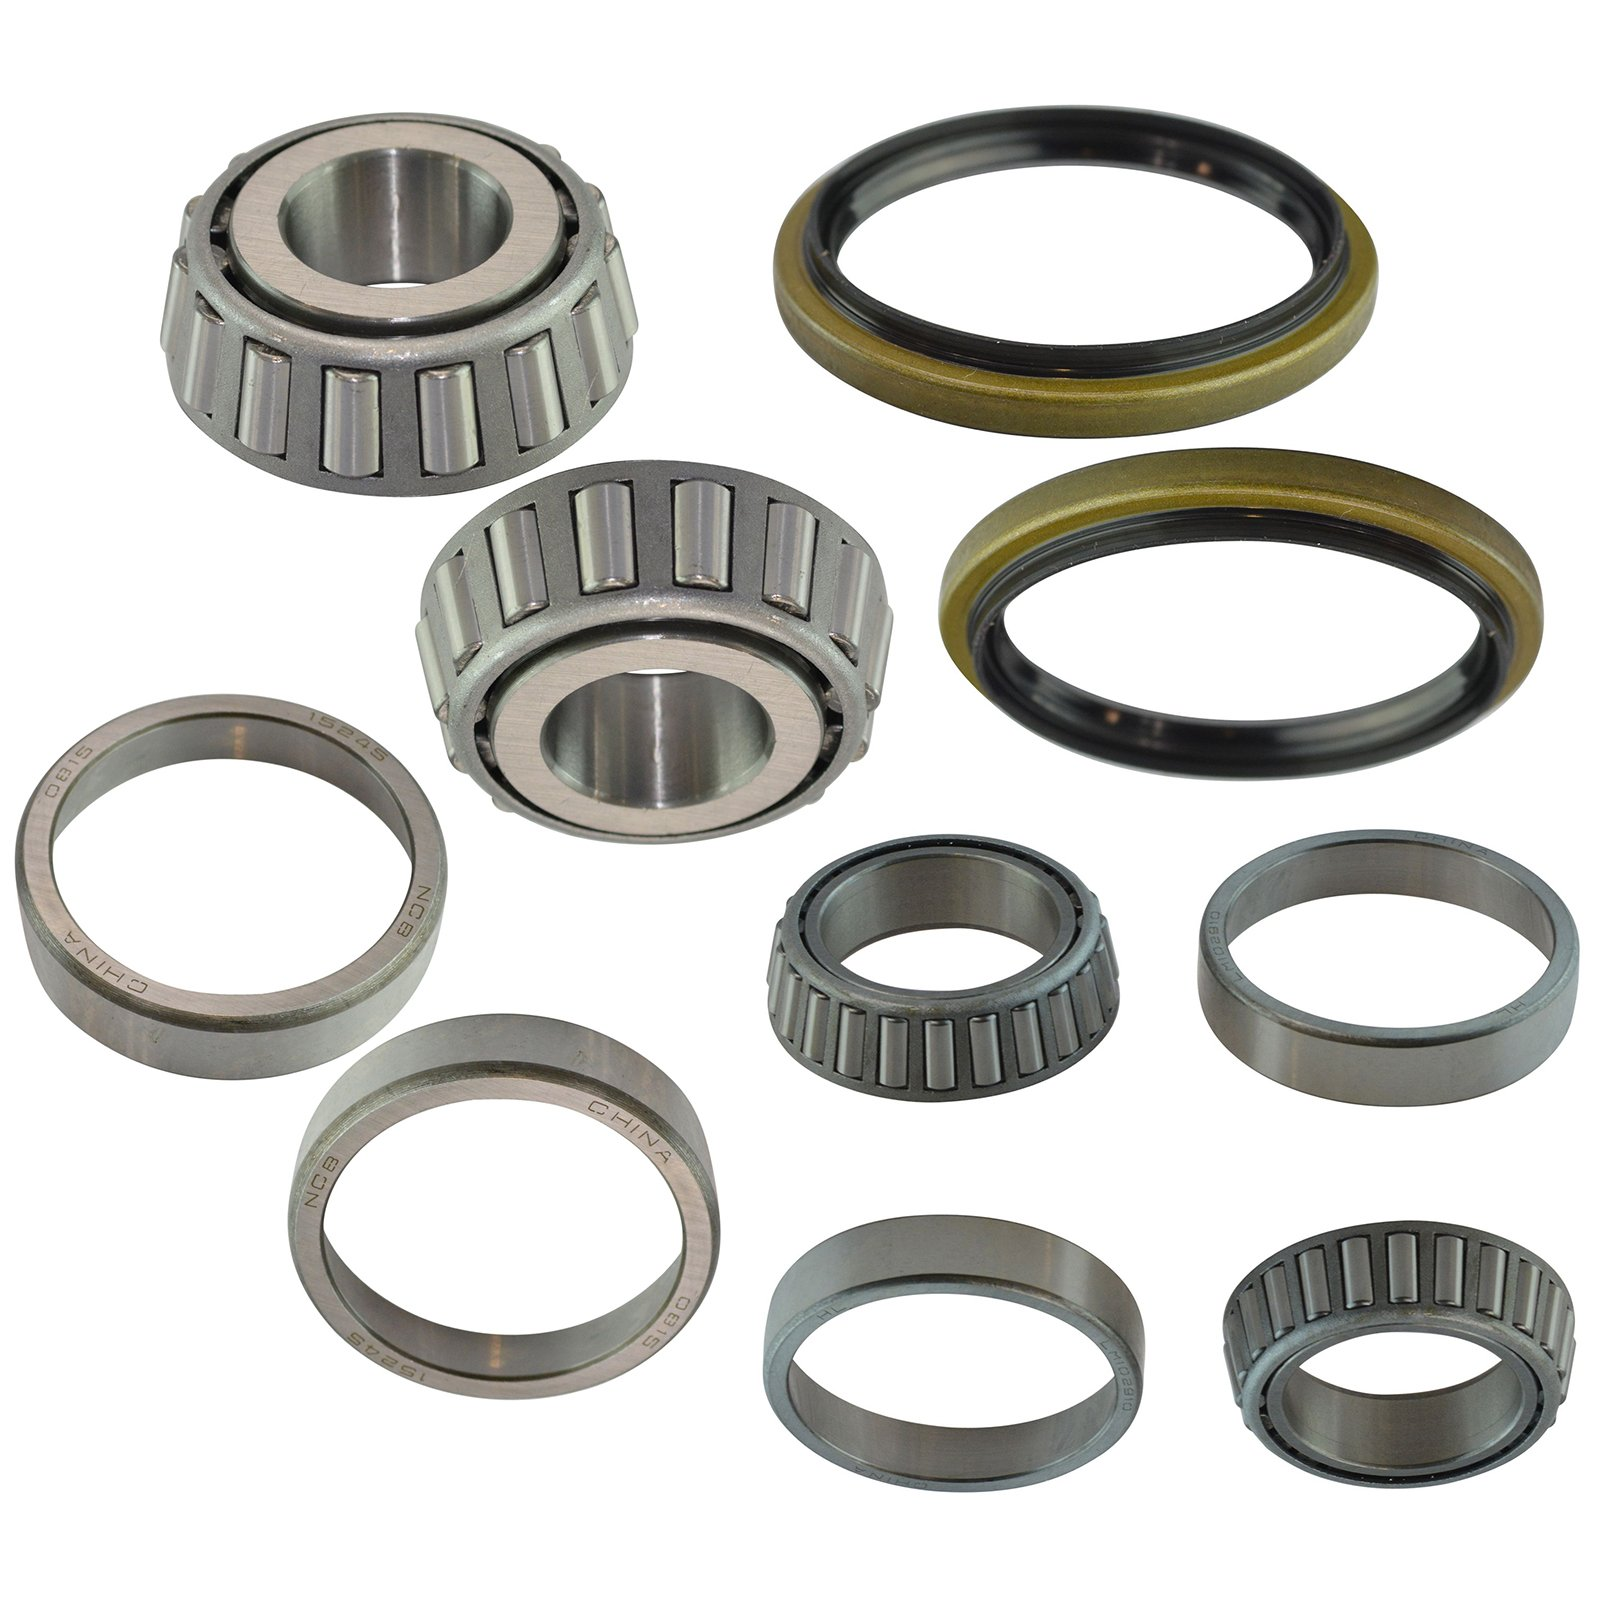 8 Piece Inner & Outer Wheel Bearing Race w/Seal Kit LH & RH Sides for Ford Truck by TRQ